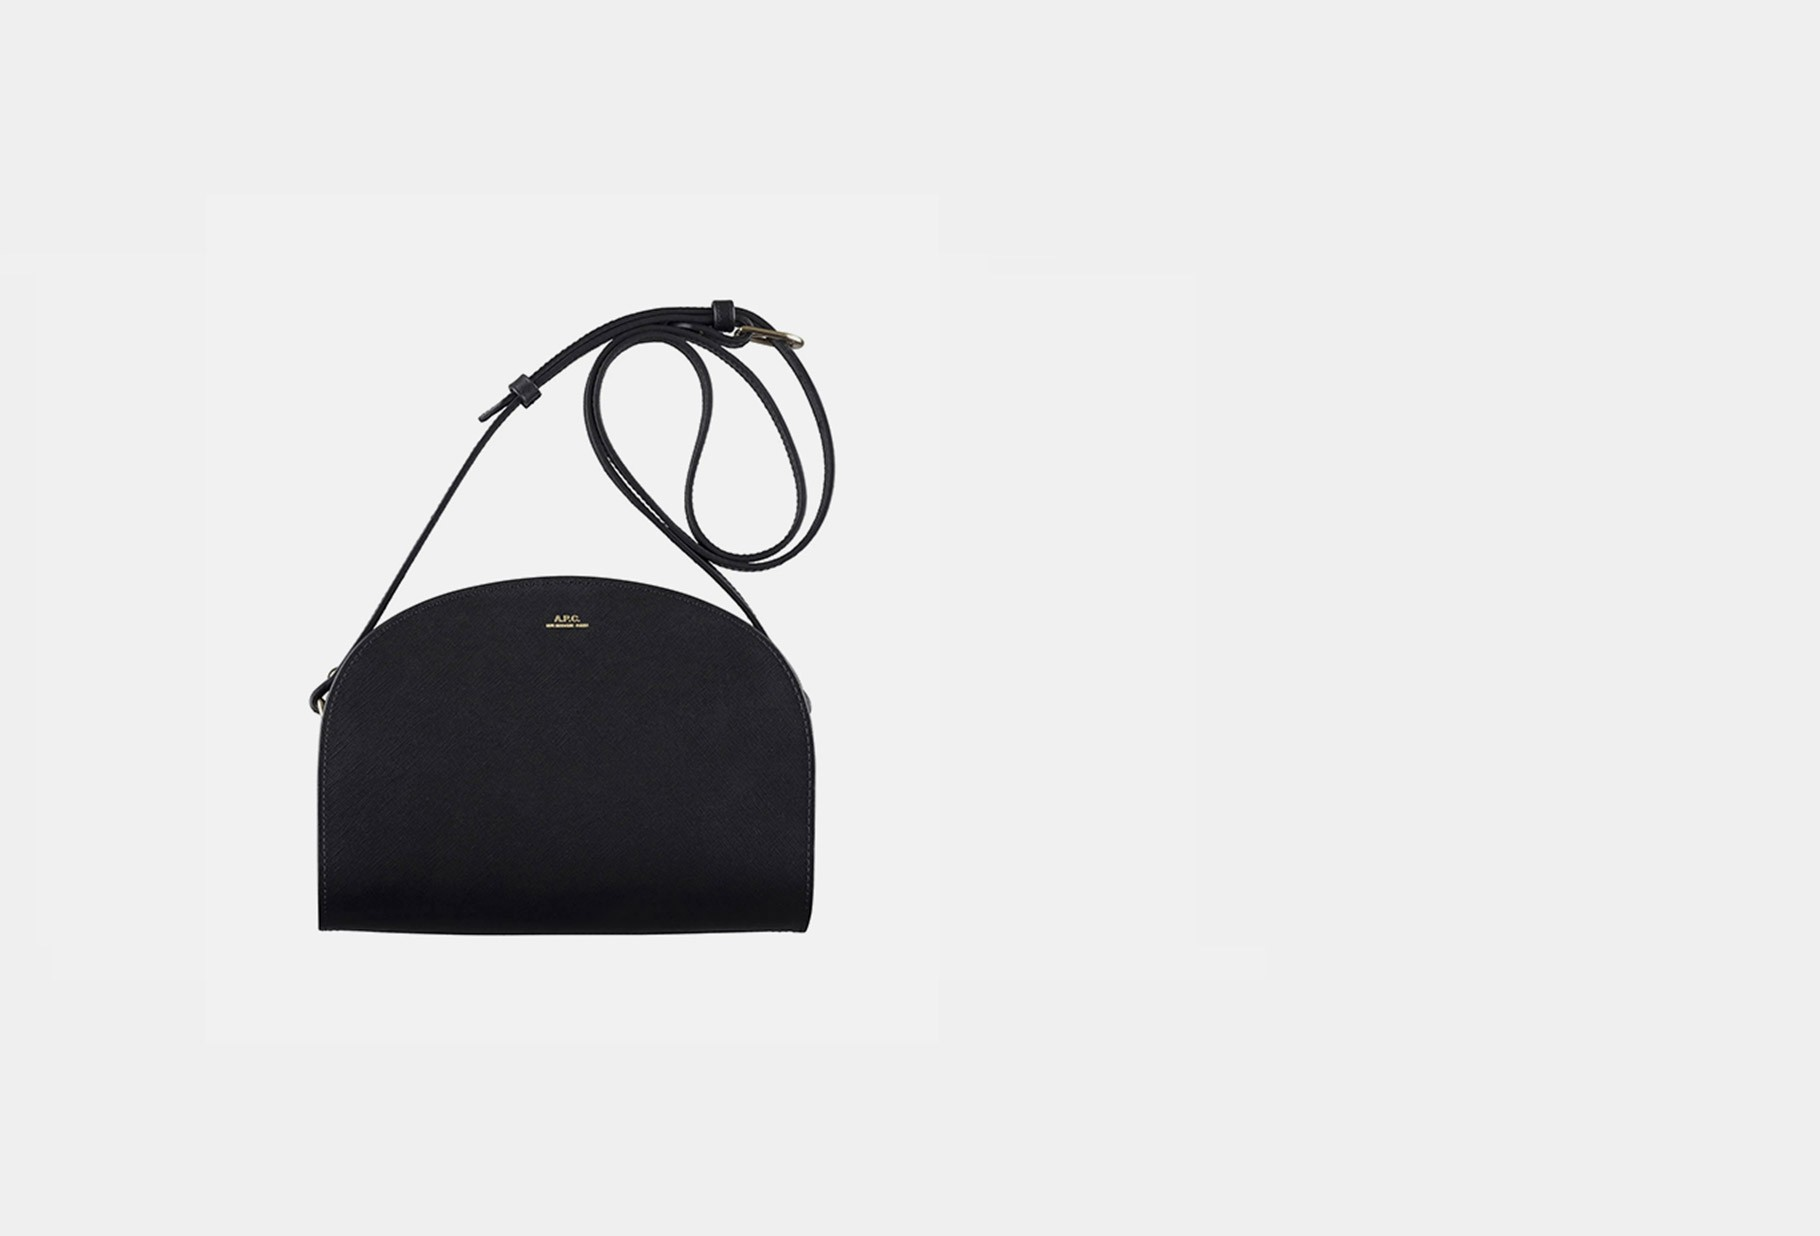 A.P.C. FOR WOMAN / Sac demi-lune embosse Noir